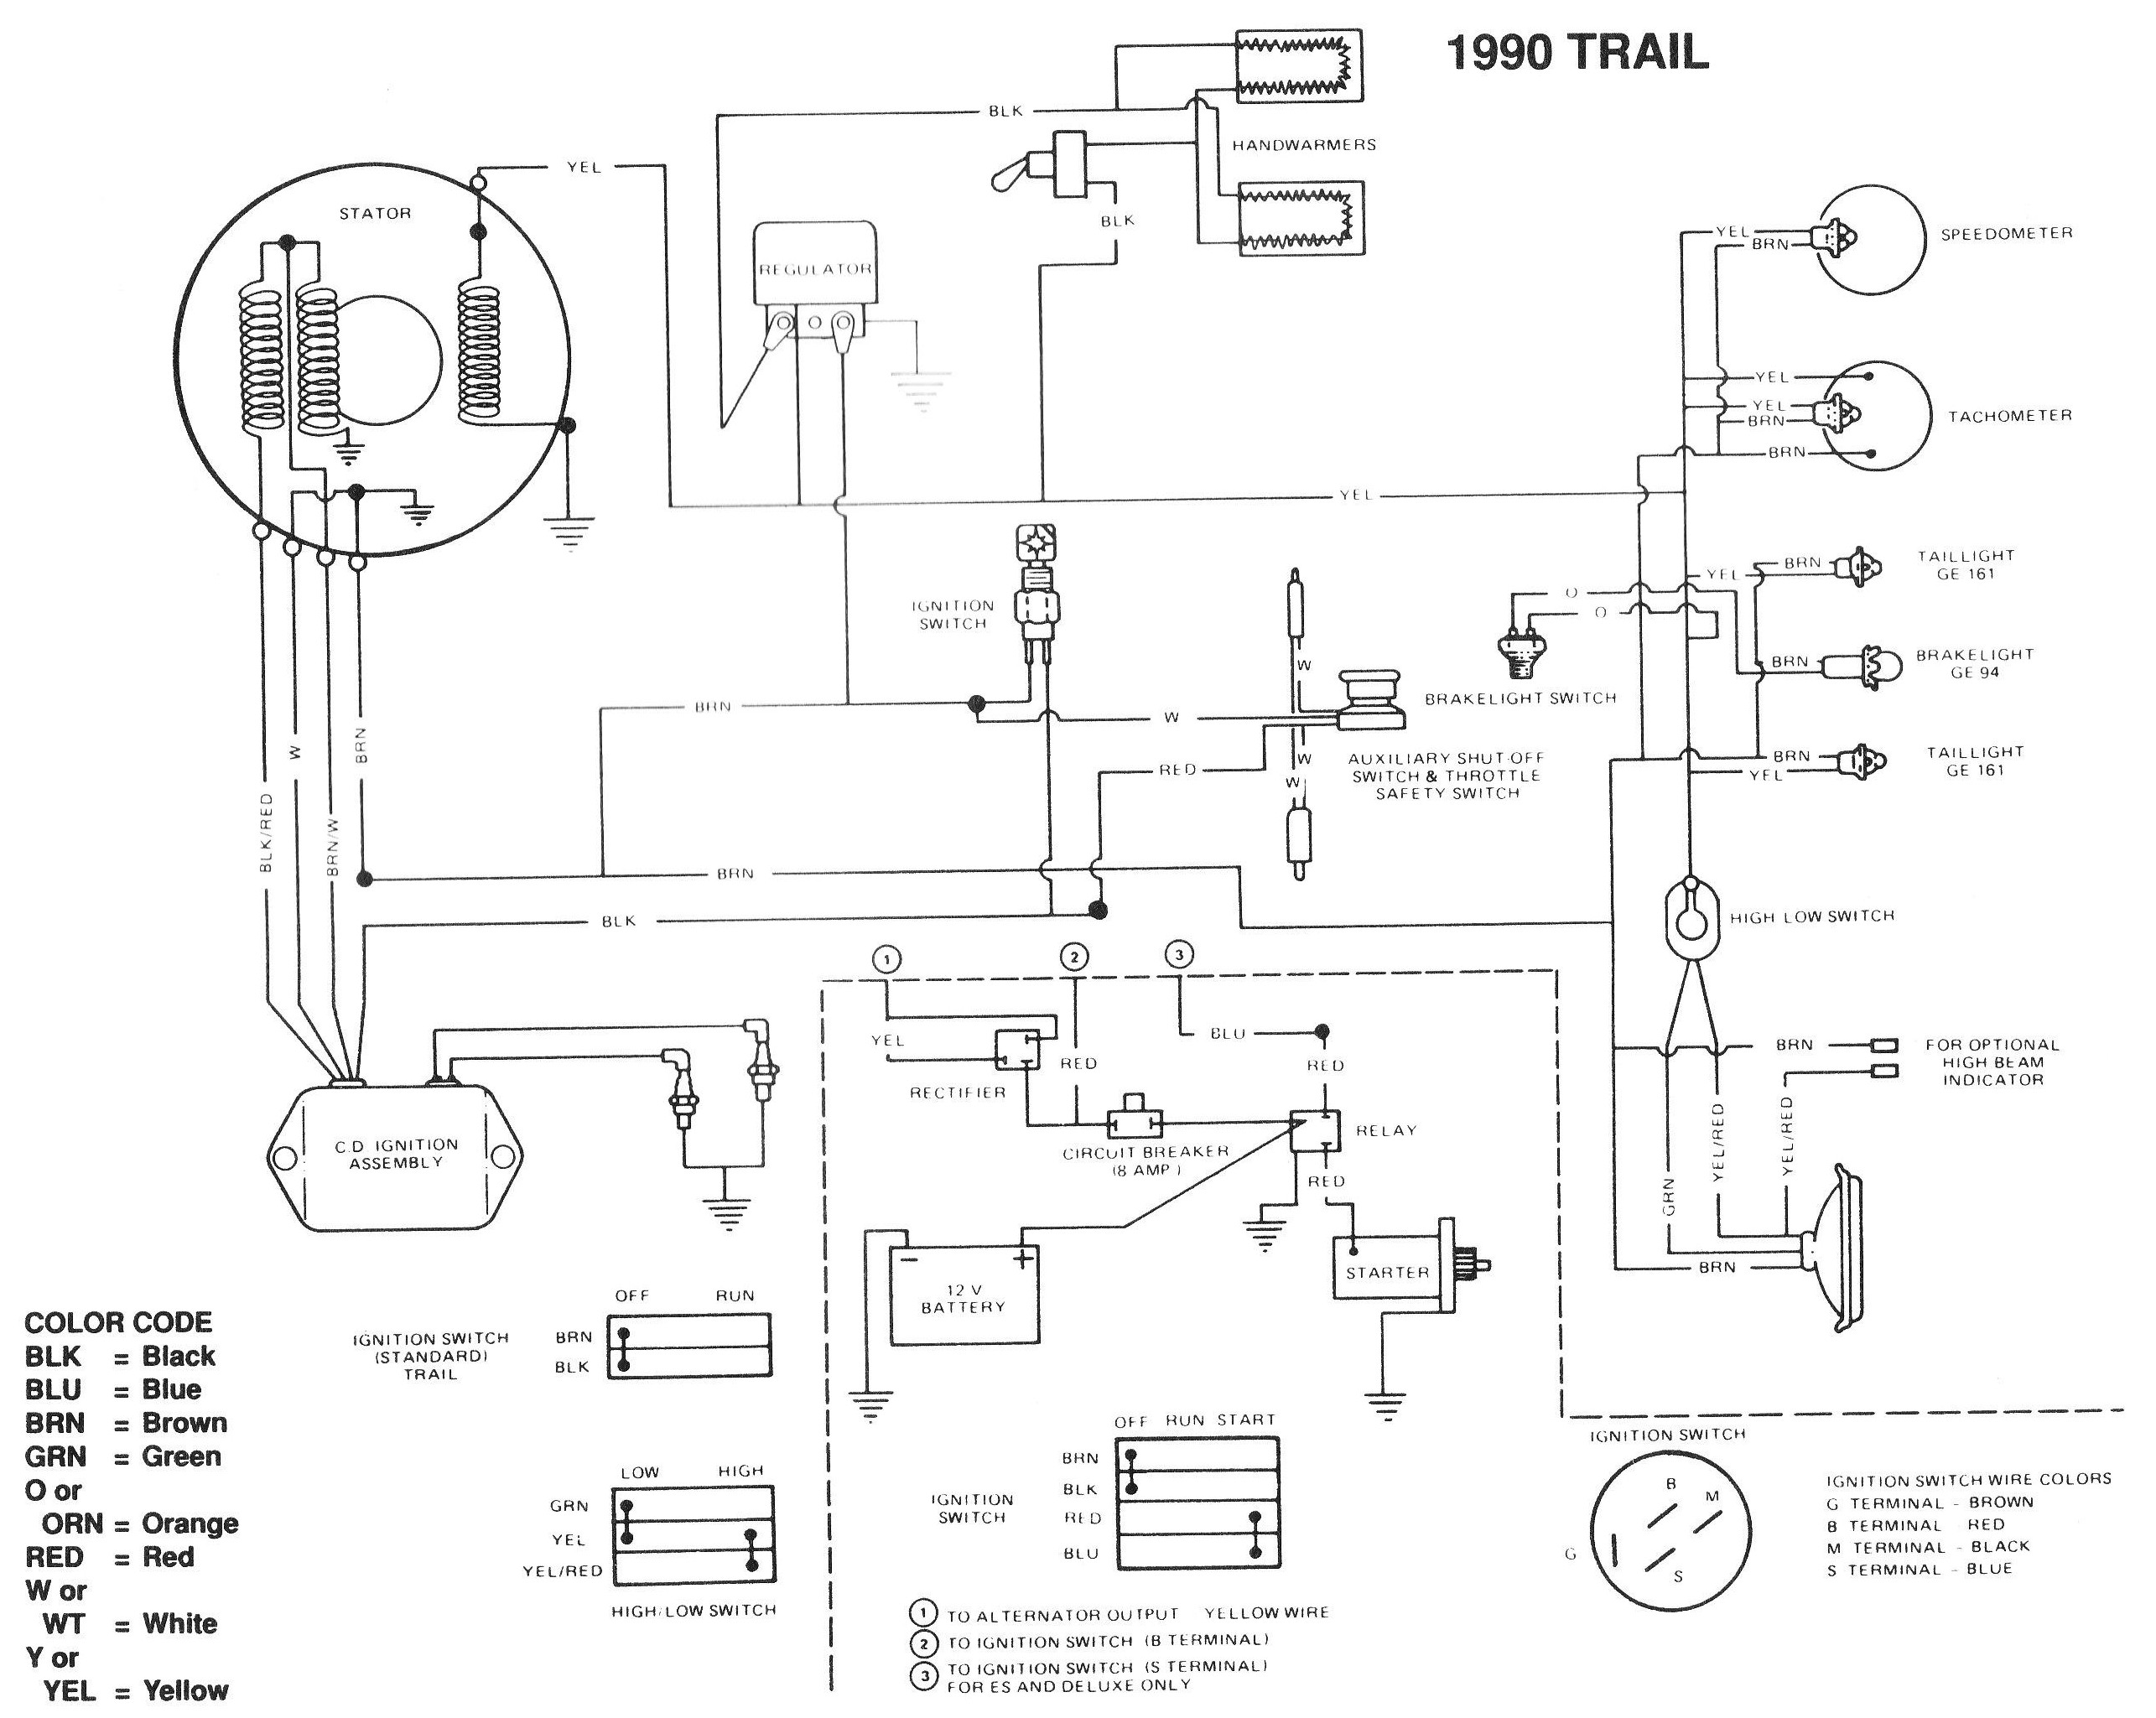 Polaris Trailblazer 250 Wiring Diagram 38 Images Lt 250r 174516 Indy Trail 488 Fan Wire 201021122712567 31875